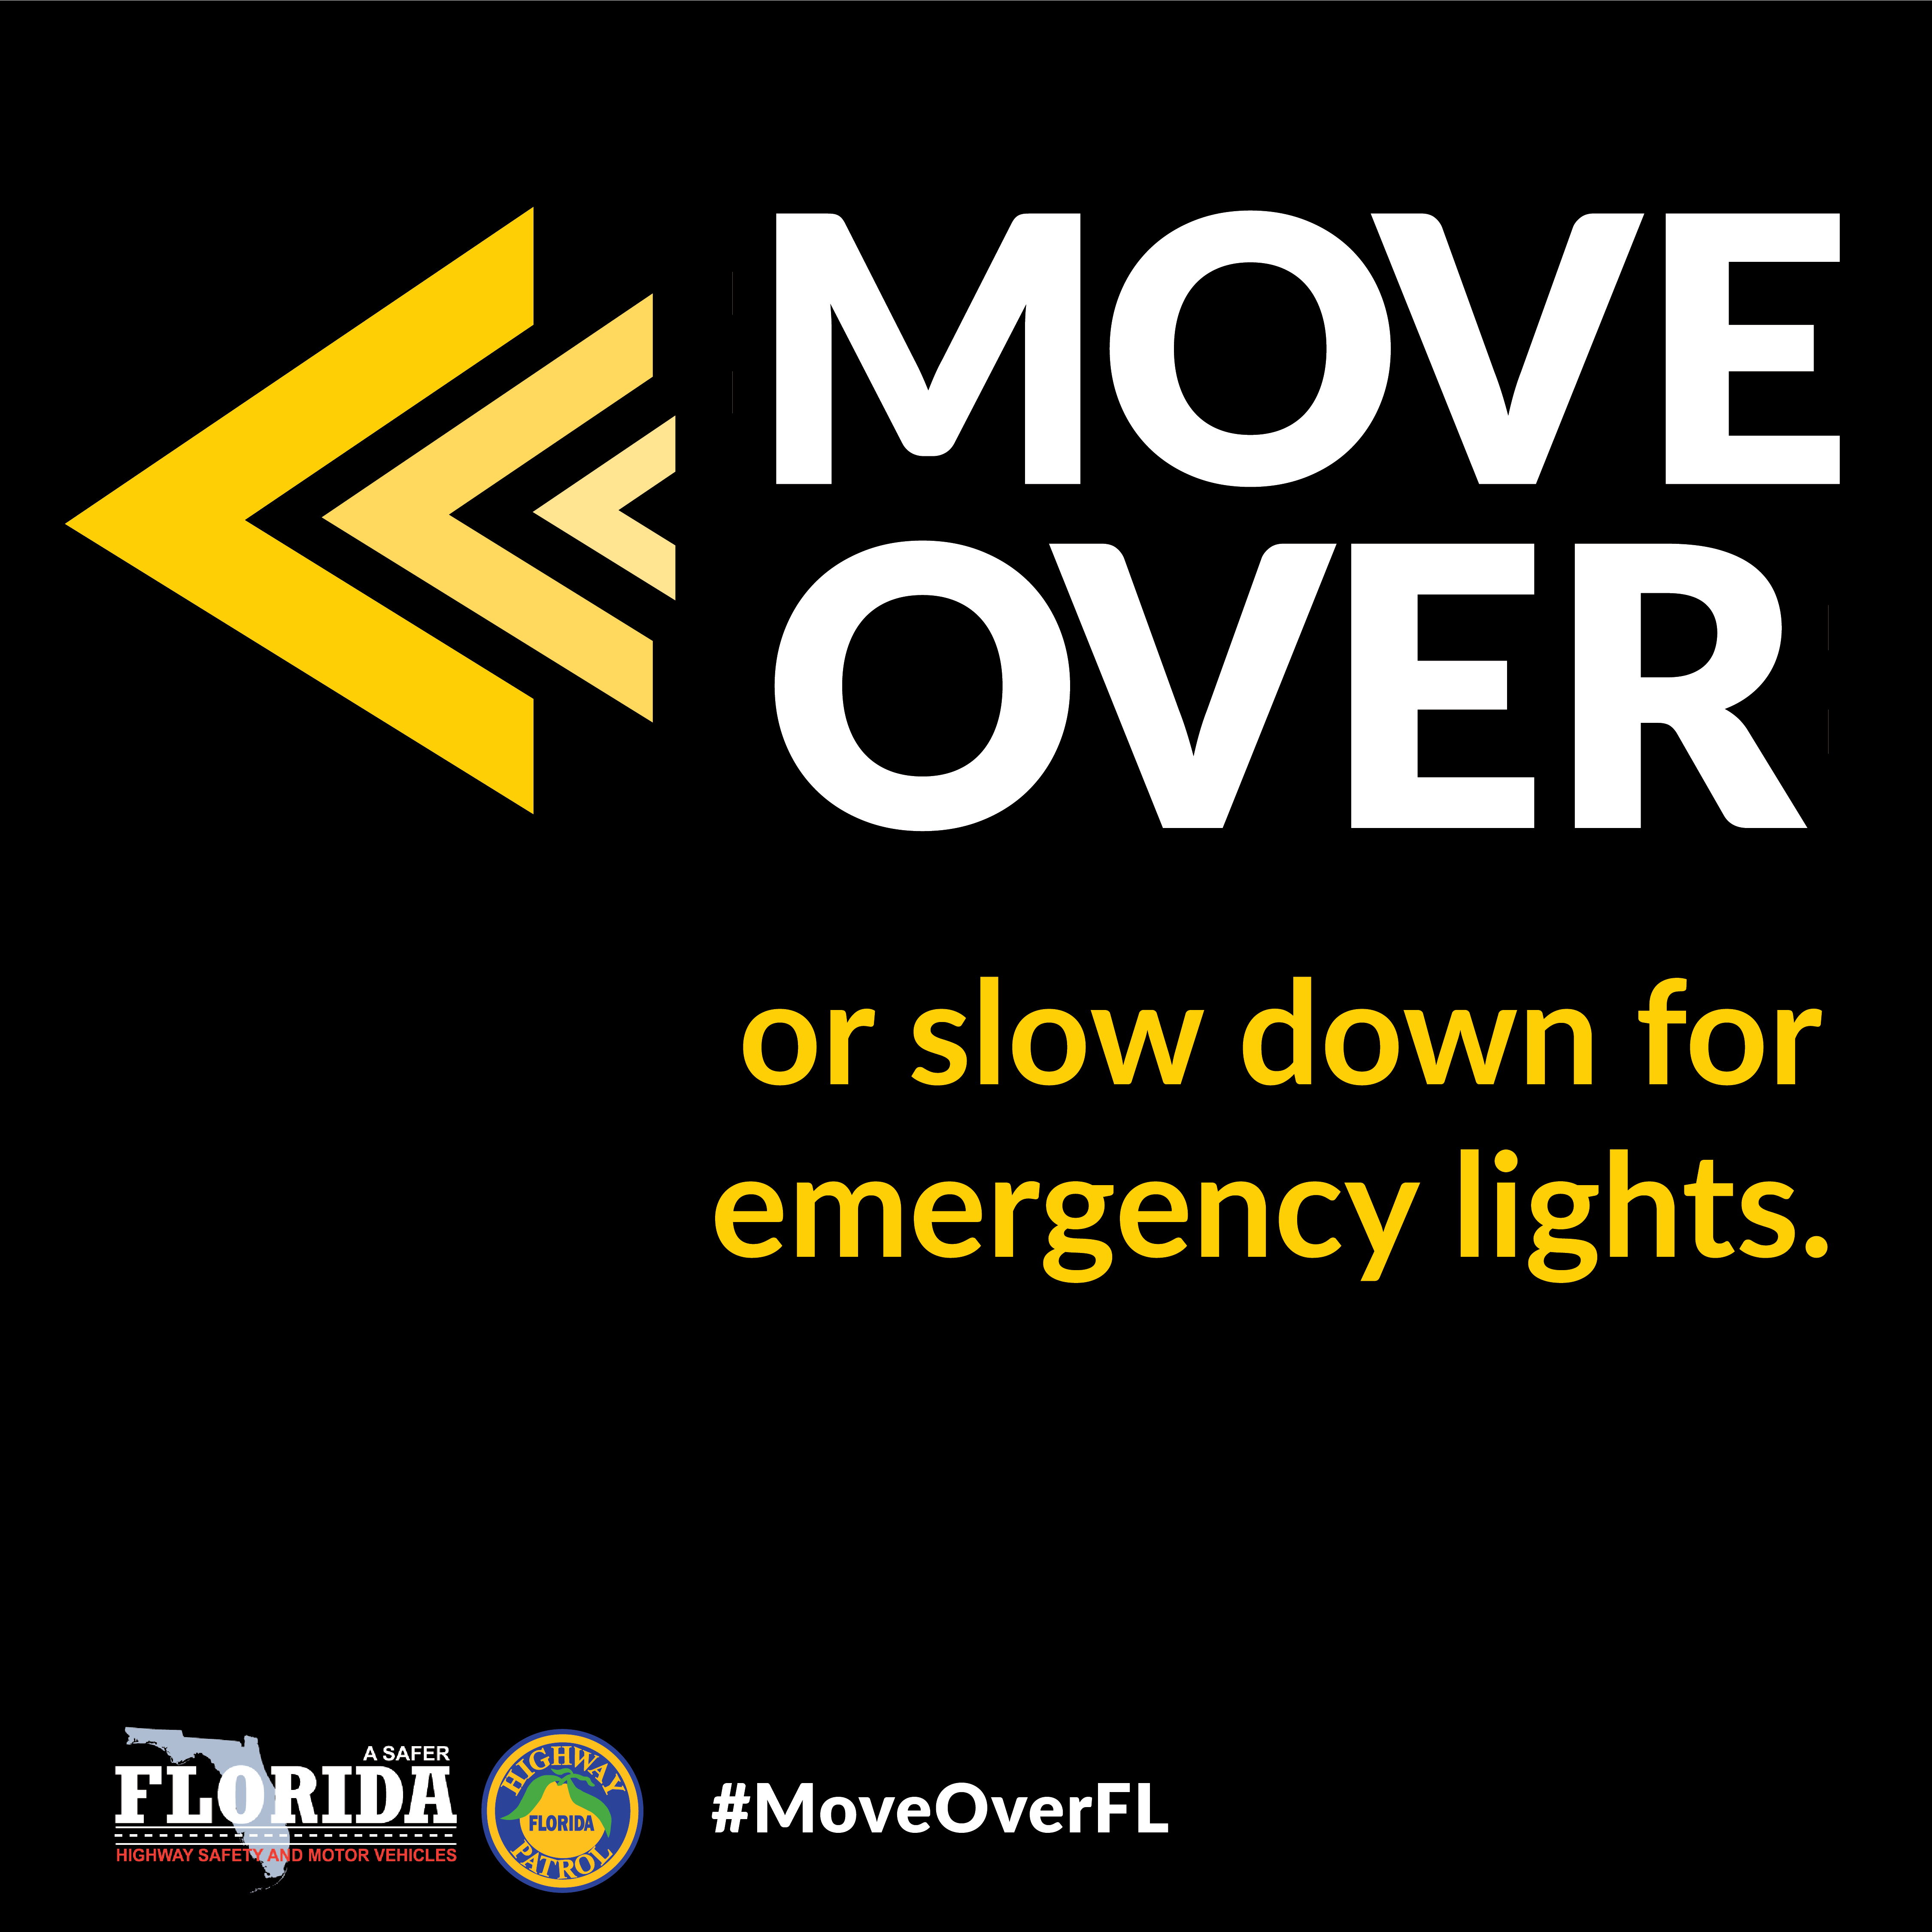 Move Over, Florida! - Florida Department of Highway Safety